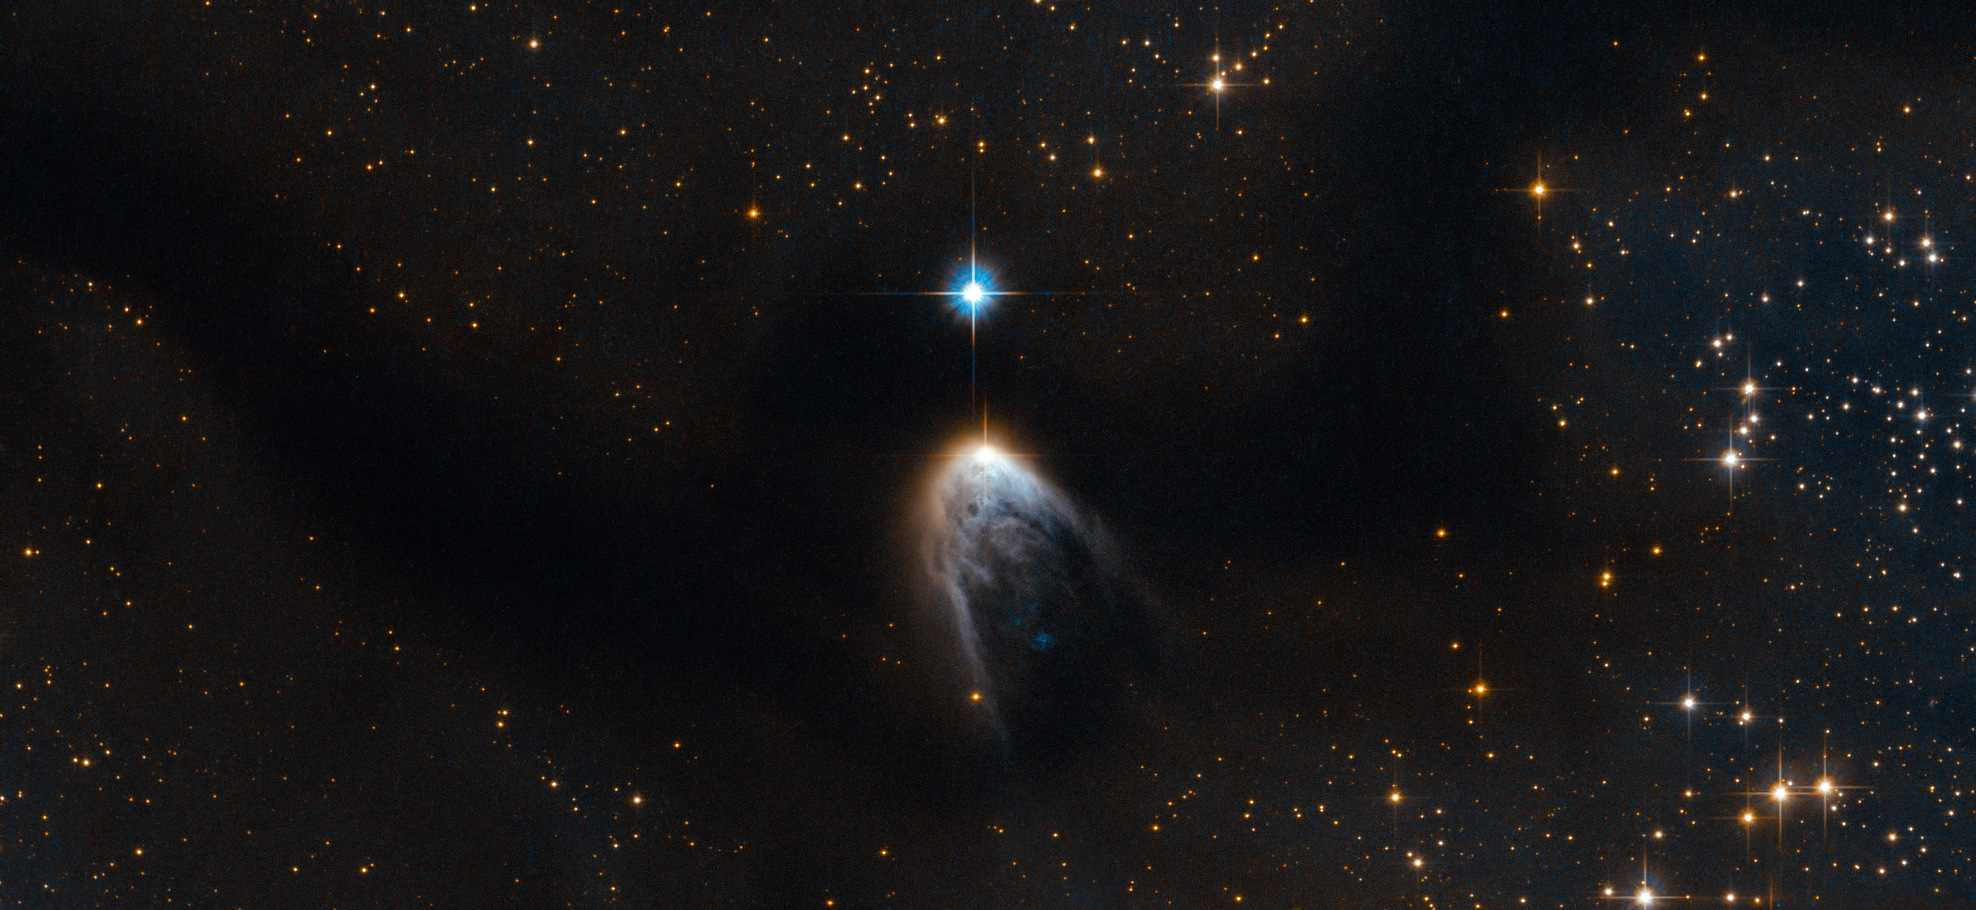 IRAS 14568-6304, a young stellar object. Click picture for a larger version. Image credit: ESA/Hubble & NASA. Acknowledgements: R. Sahai (Jet Propulsion Laboratory), S. Meunier.